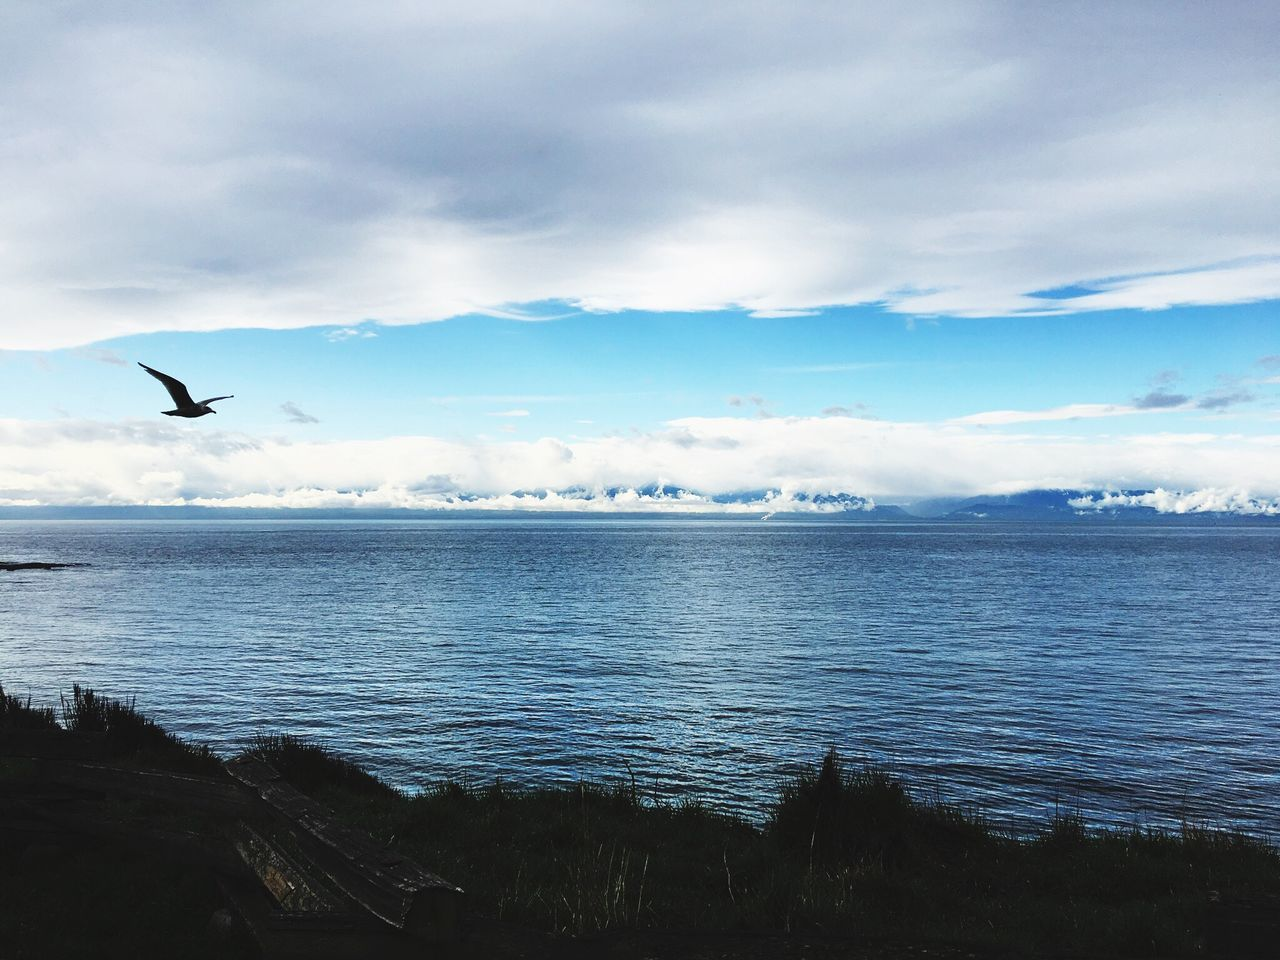 bird, animal themes, one animal, flying, animals in the wild, water, sea, nature, beauty in nature, animal wildlife, sky, tranquil scene, scenics, cloud - sky, wildlife, spread wings, mid-air, tranquility, no people, outdoors, day, seagull, horizon over water, sea bird